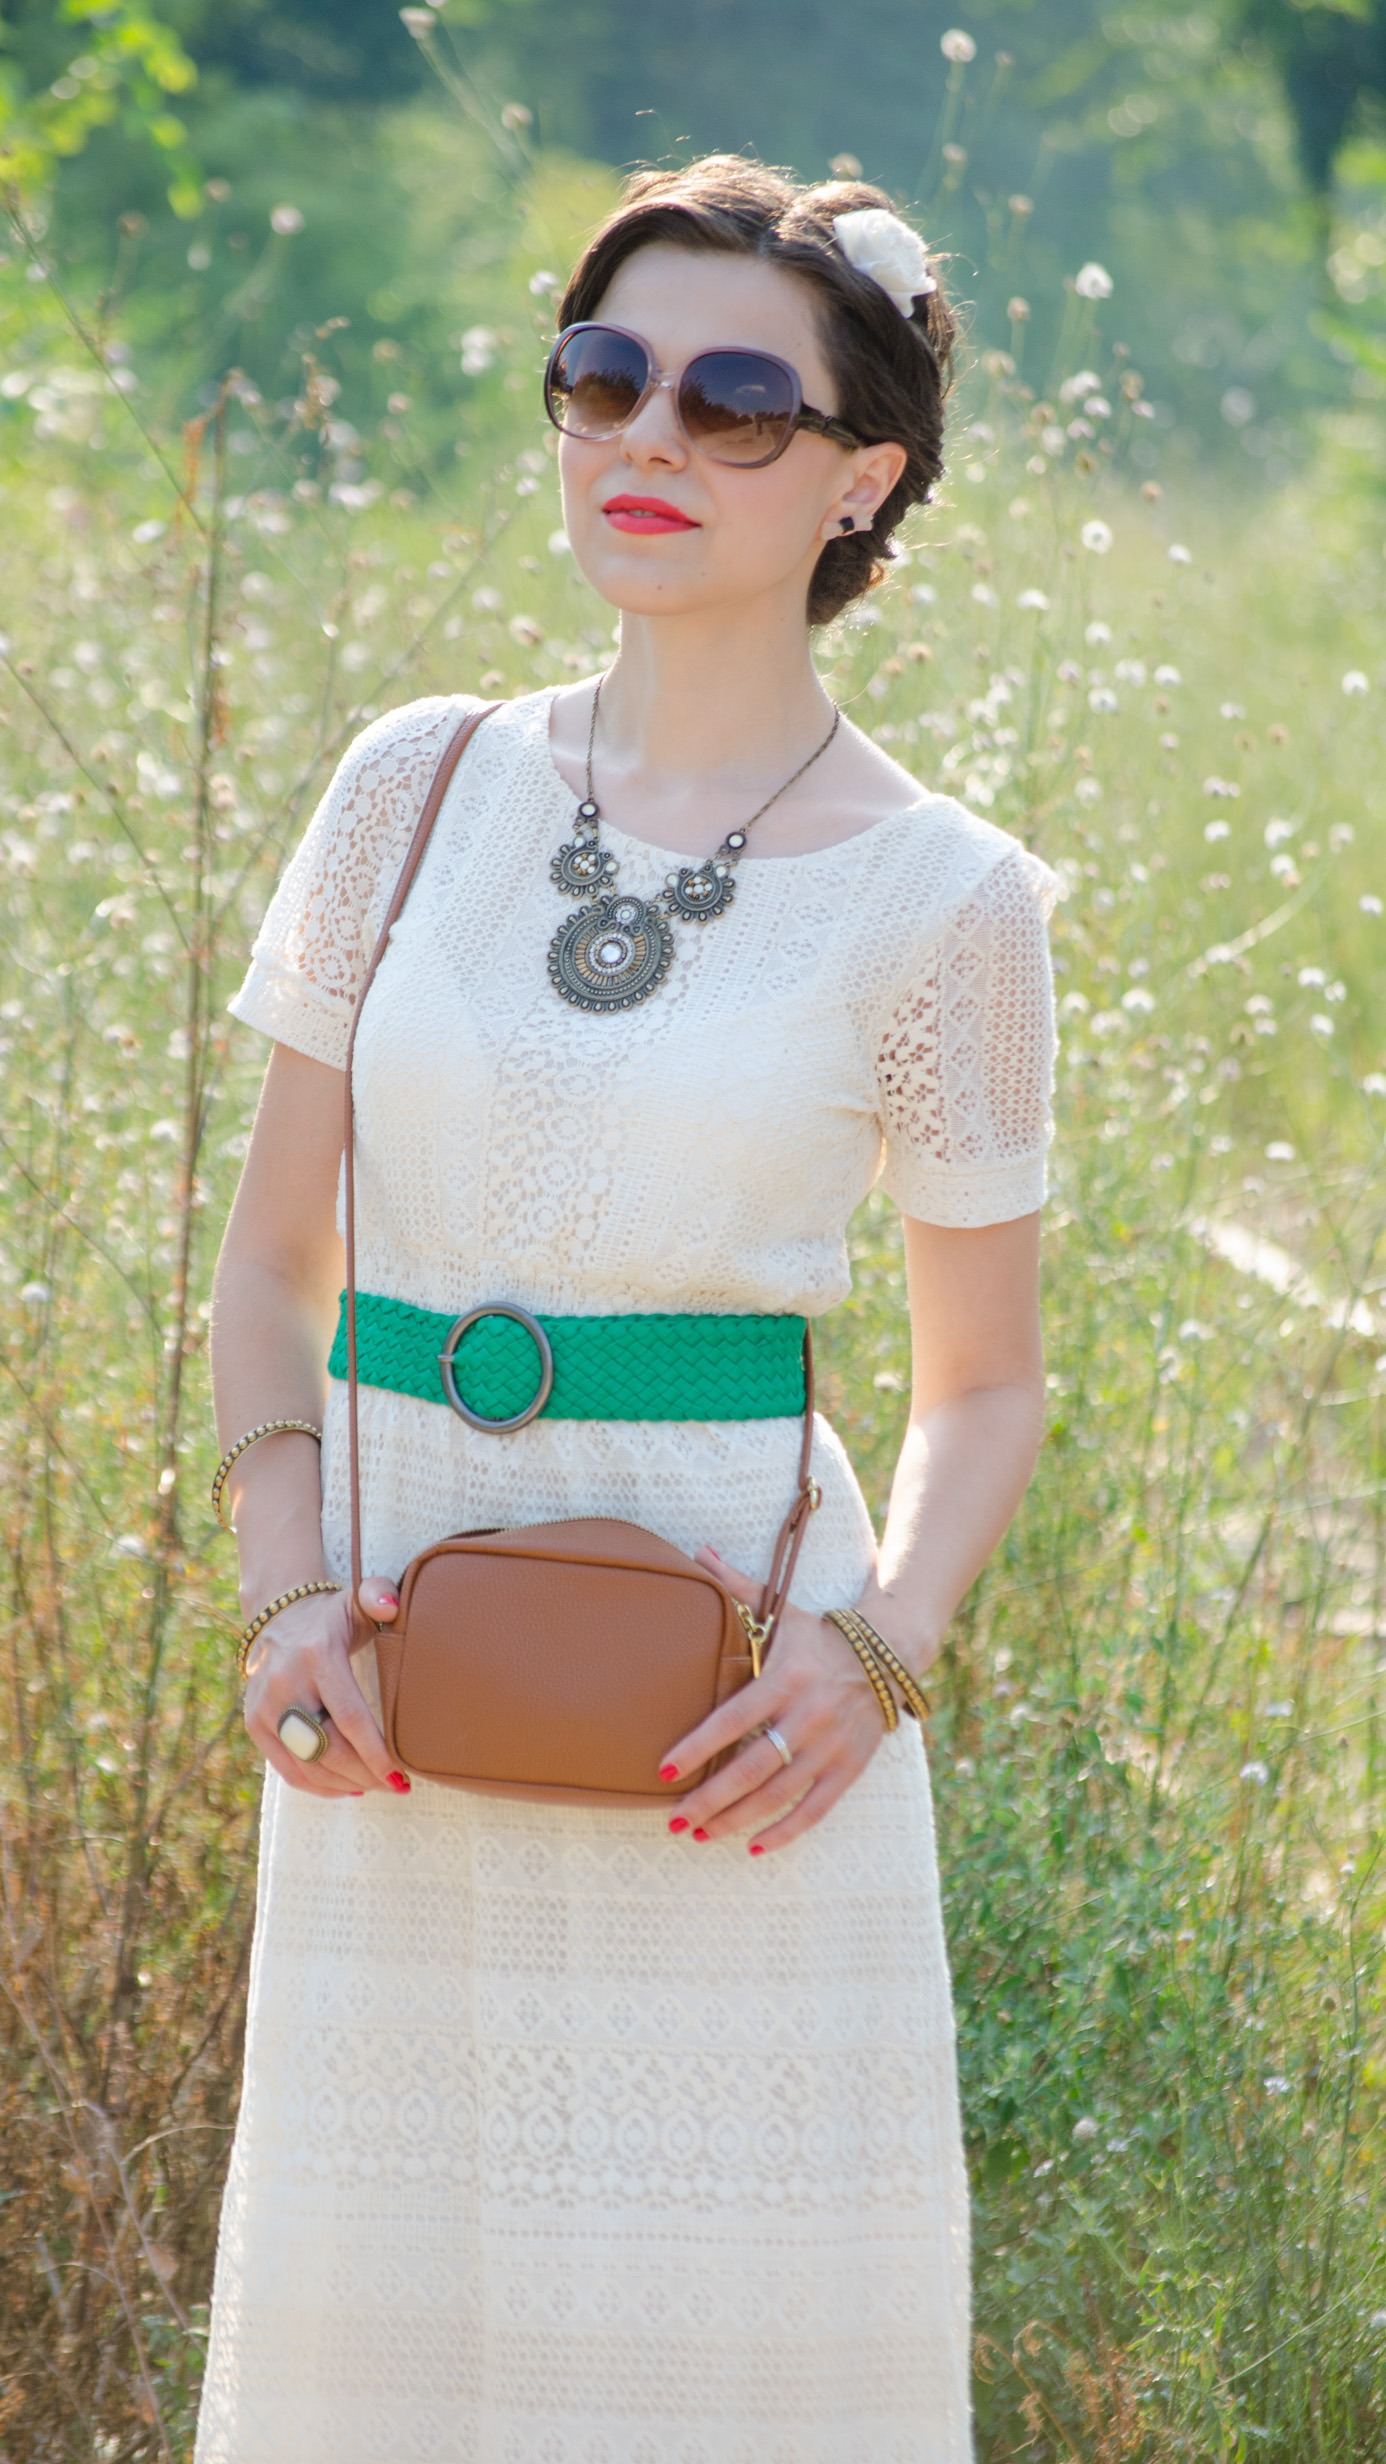 boho chic cotton lace dress koton green belt strap green nude shoes statement necklace h&m small brown satchel ivory